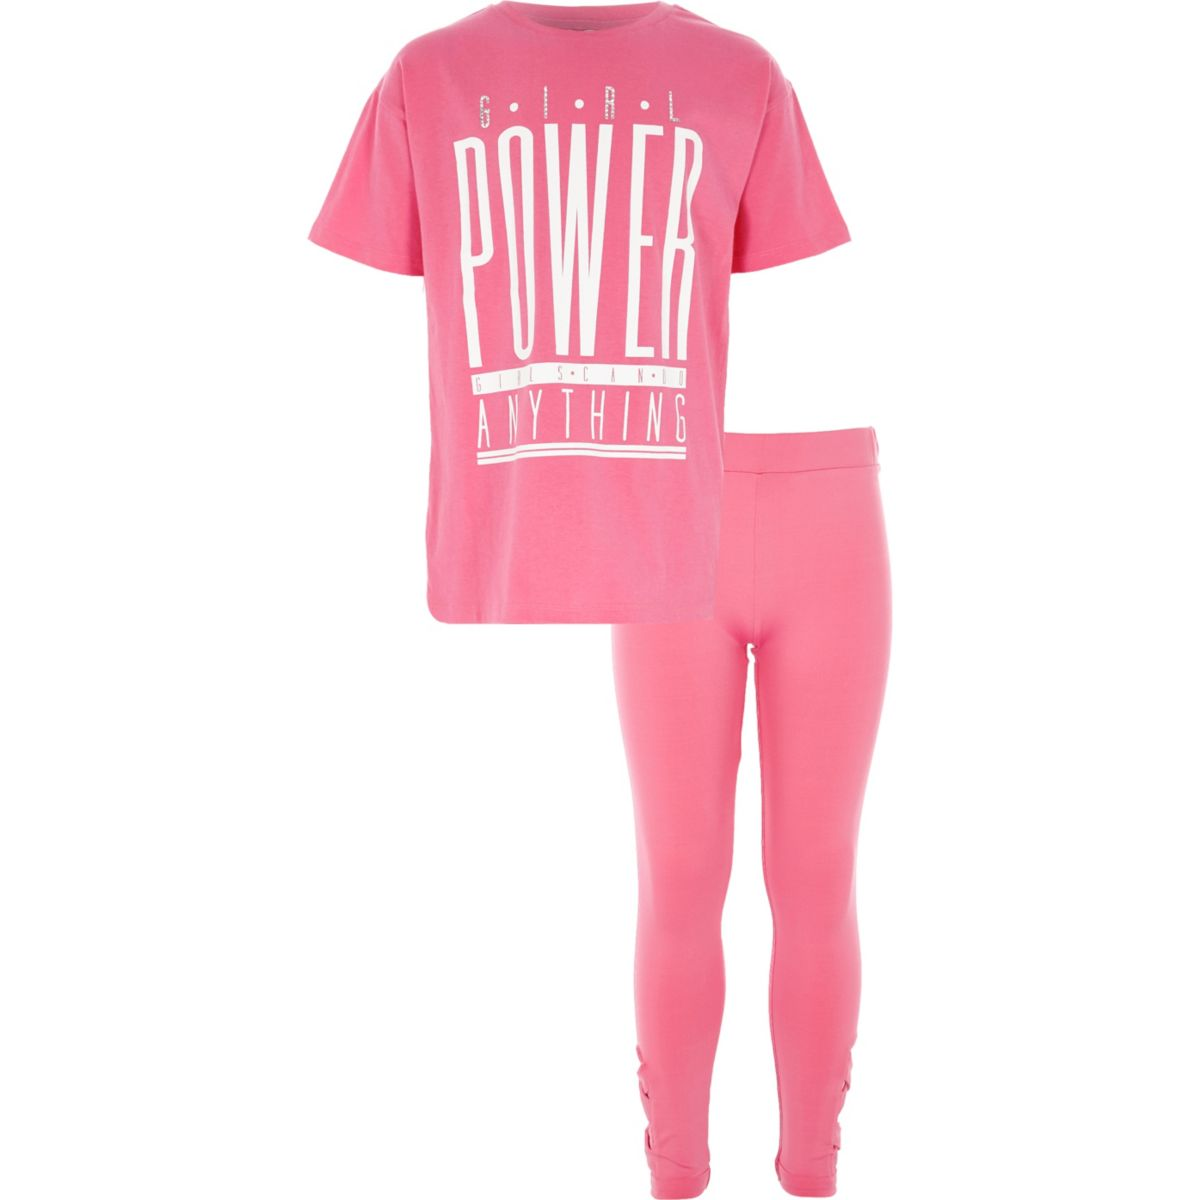 Girls pink 'girl power' rhinestone outfit